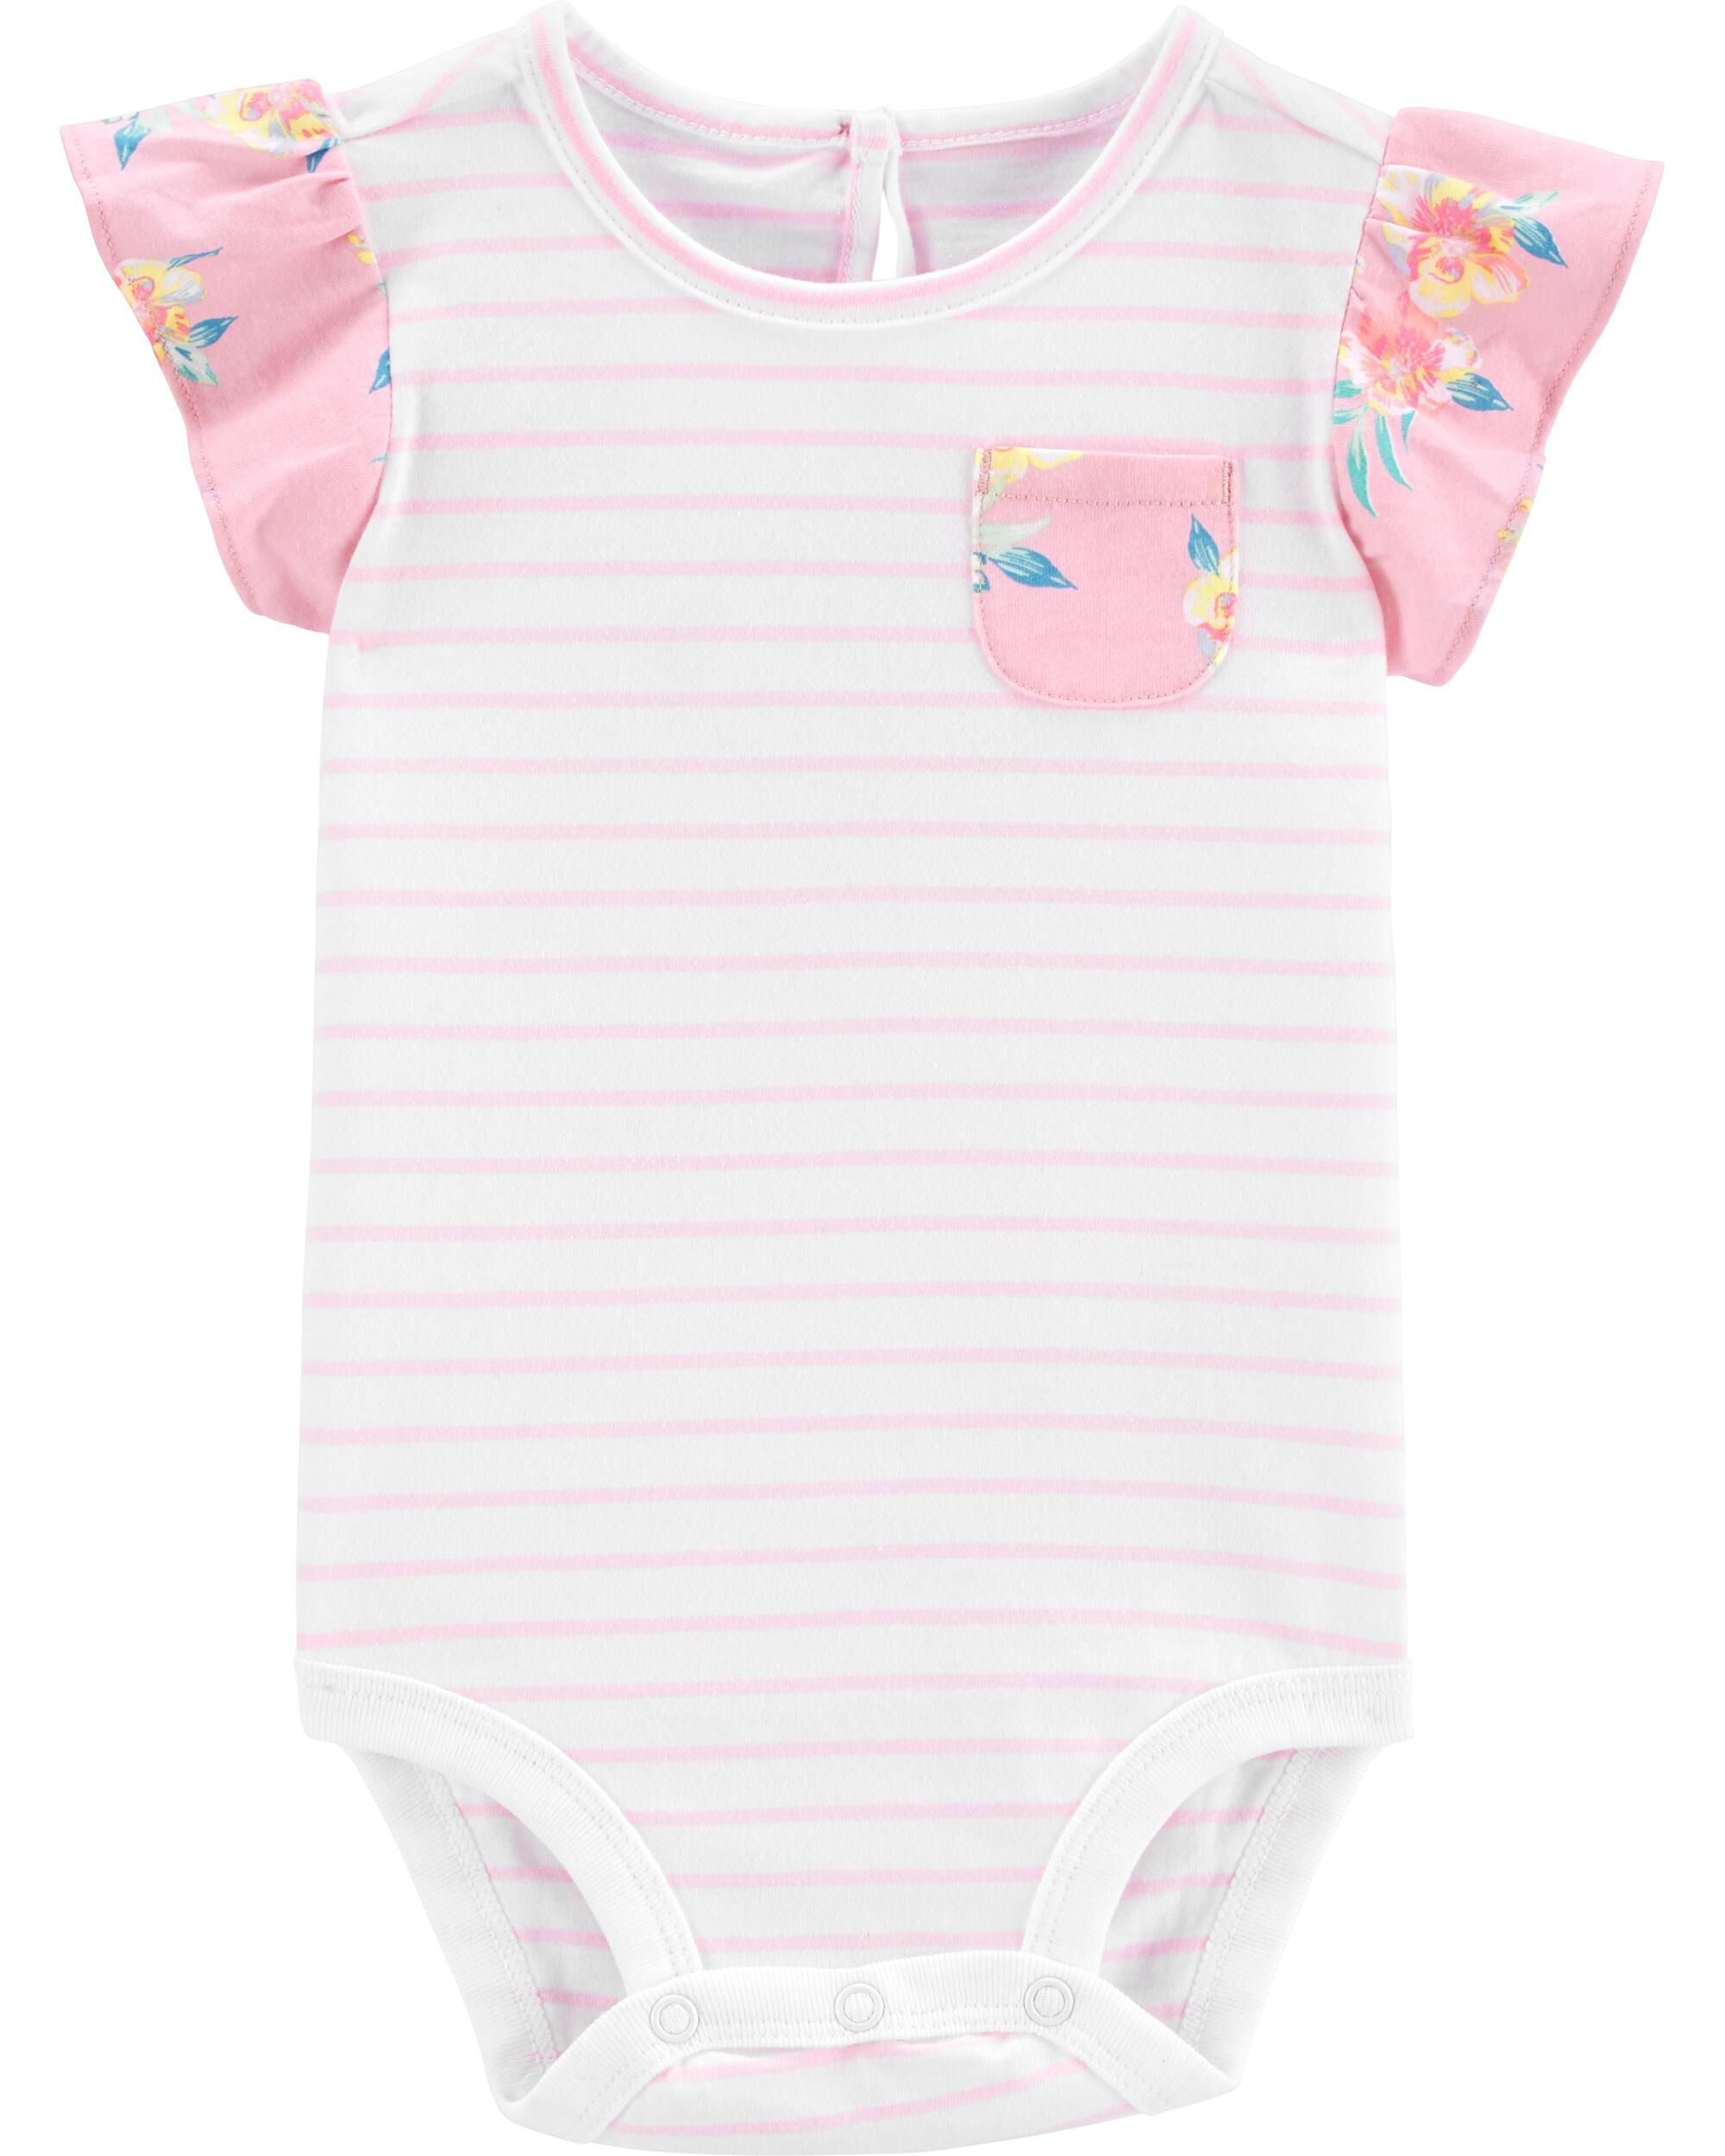 Baby Girl long Sleeve T Shirt in Pale Pink and Cream Stripe